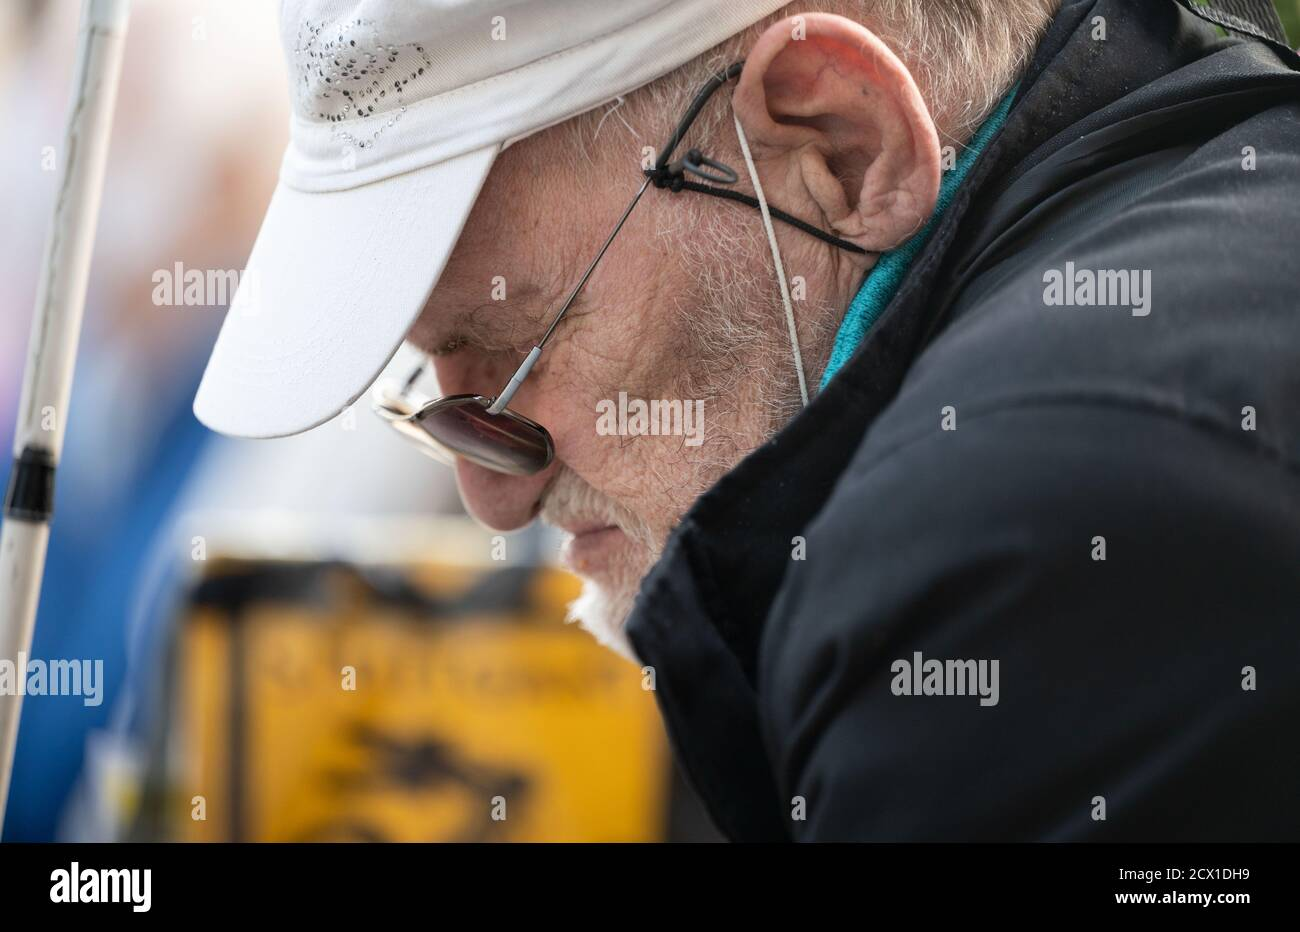 Dietrich Wagner High Resolution Stock Photography And Images Alamy